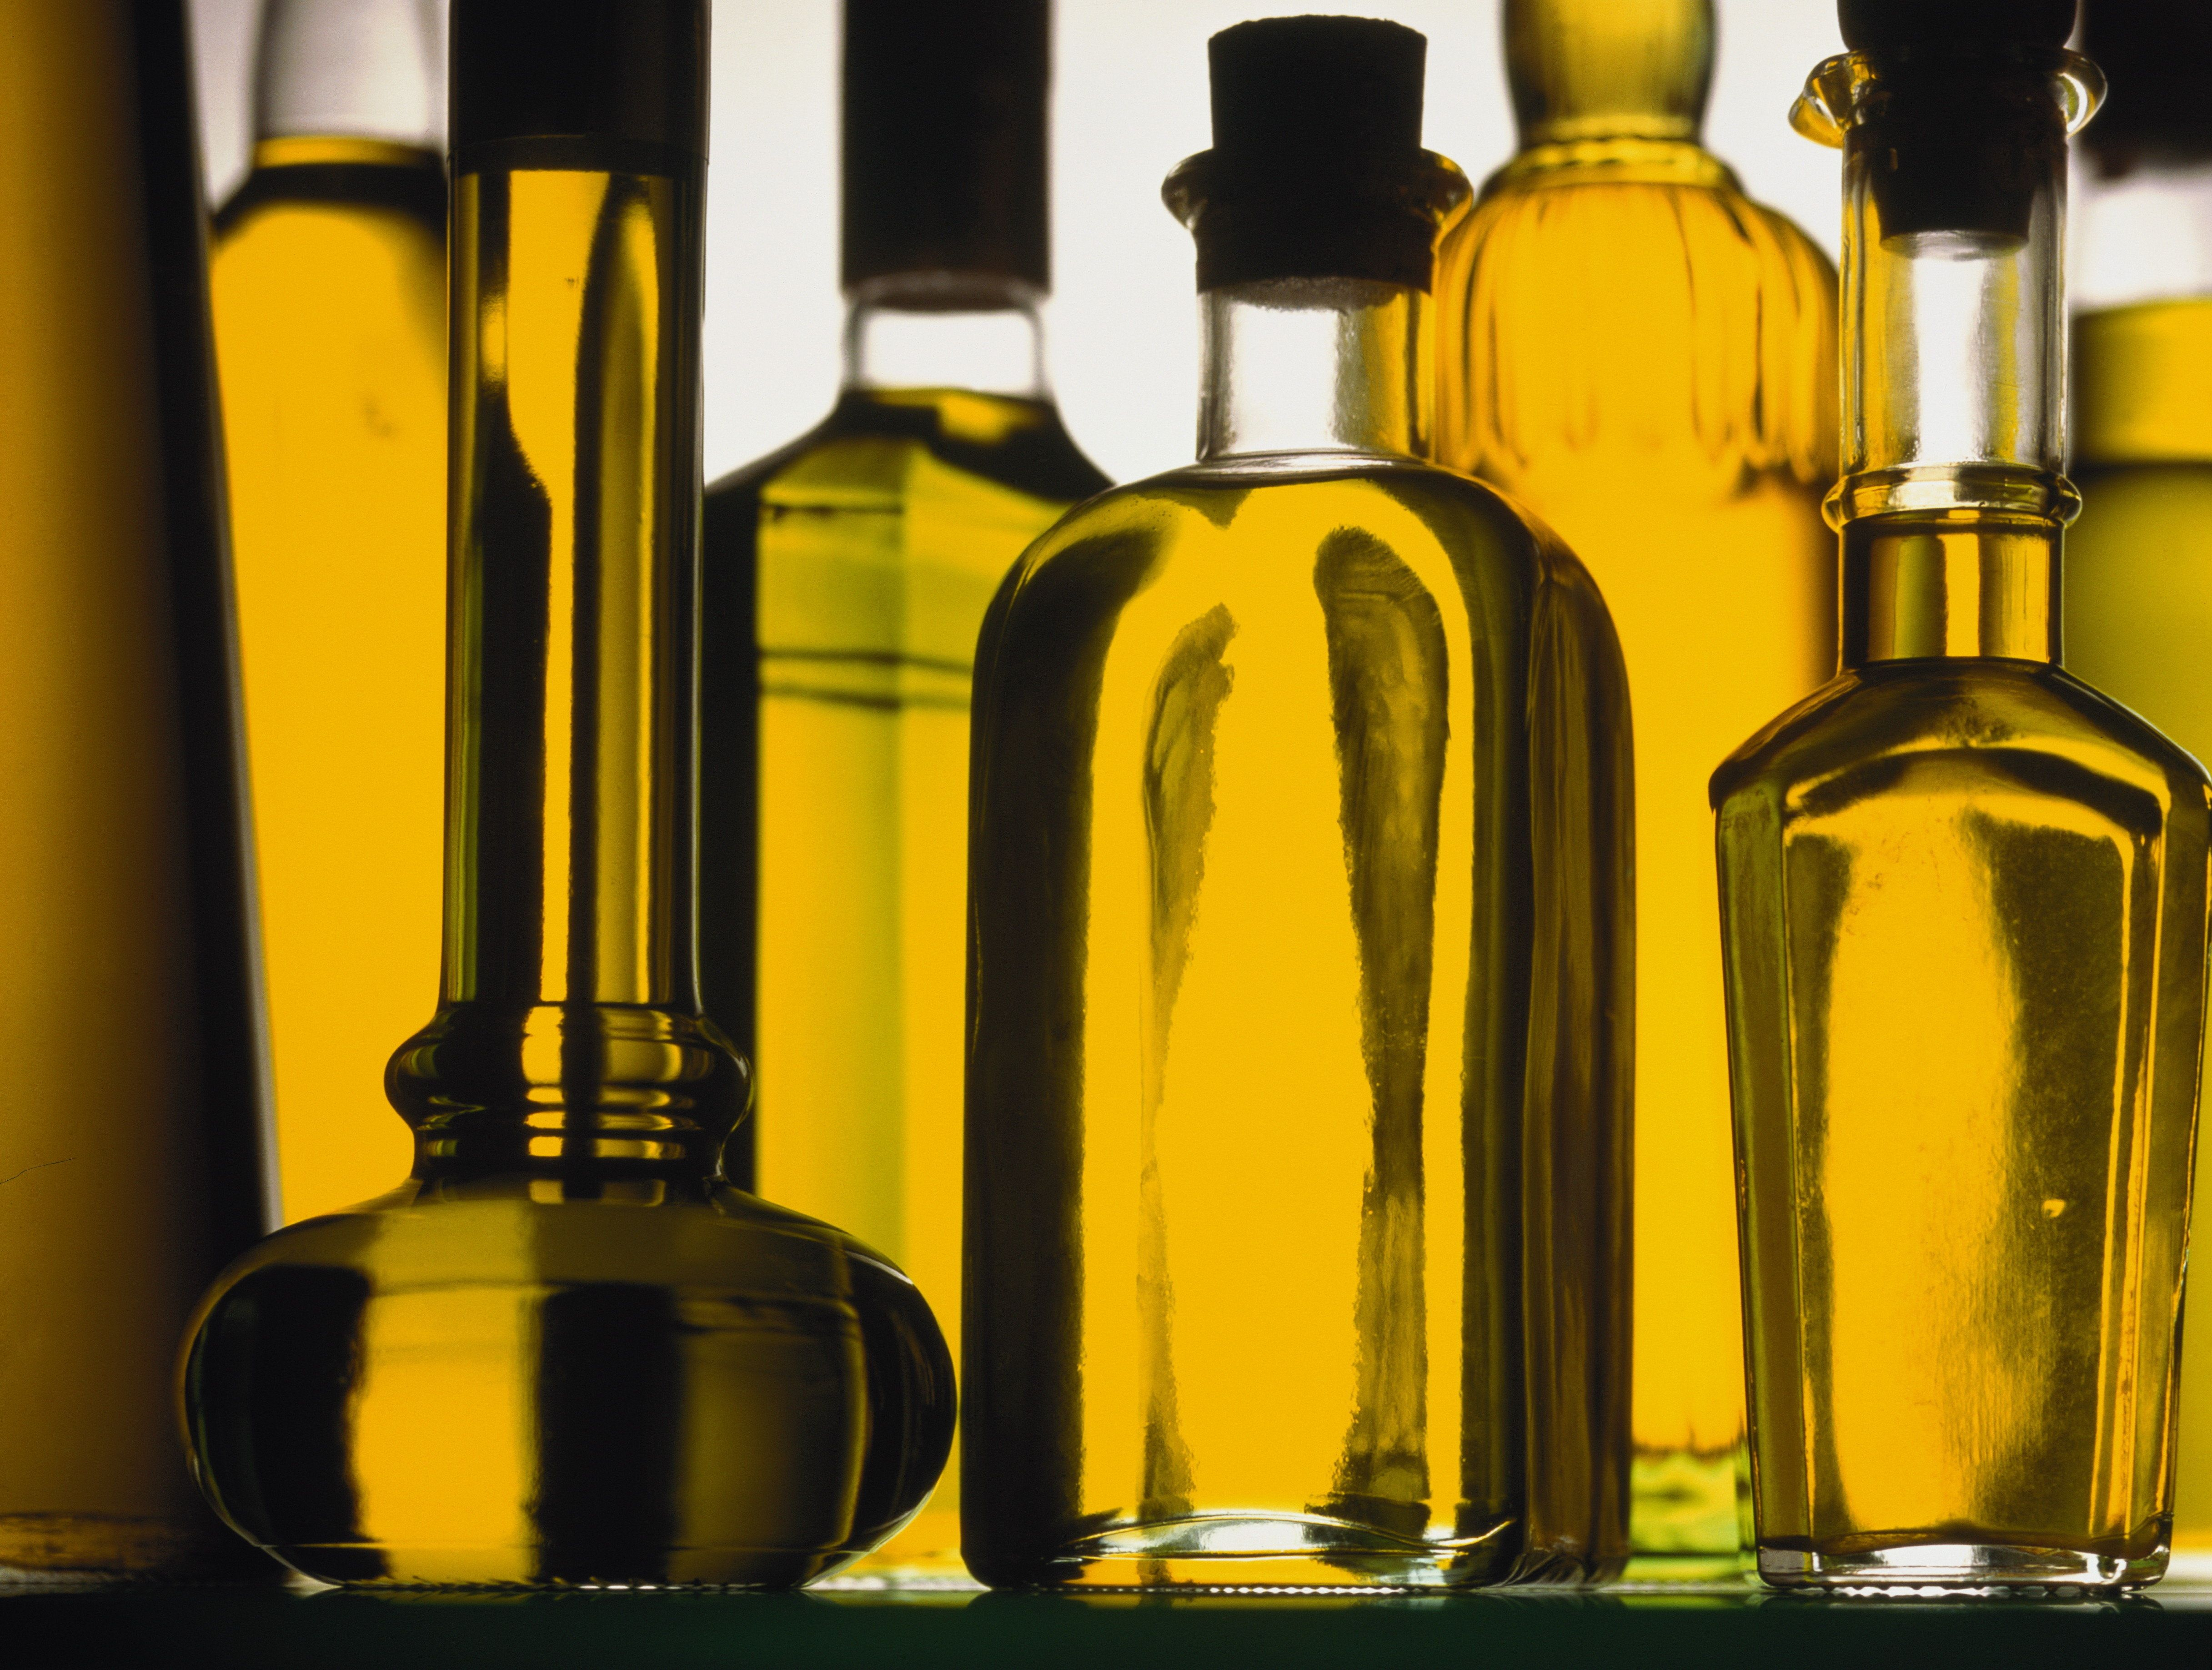 Glass bottles filled with cooking oil, close-up